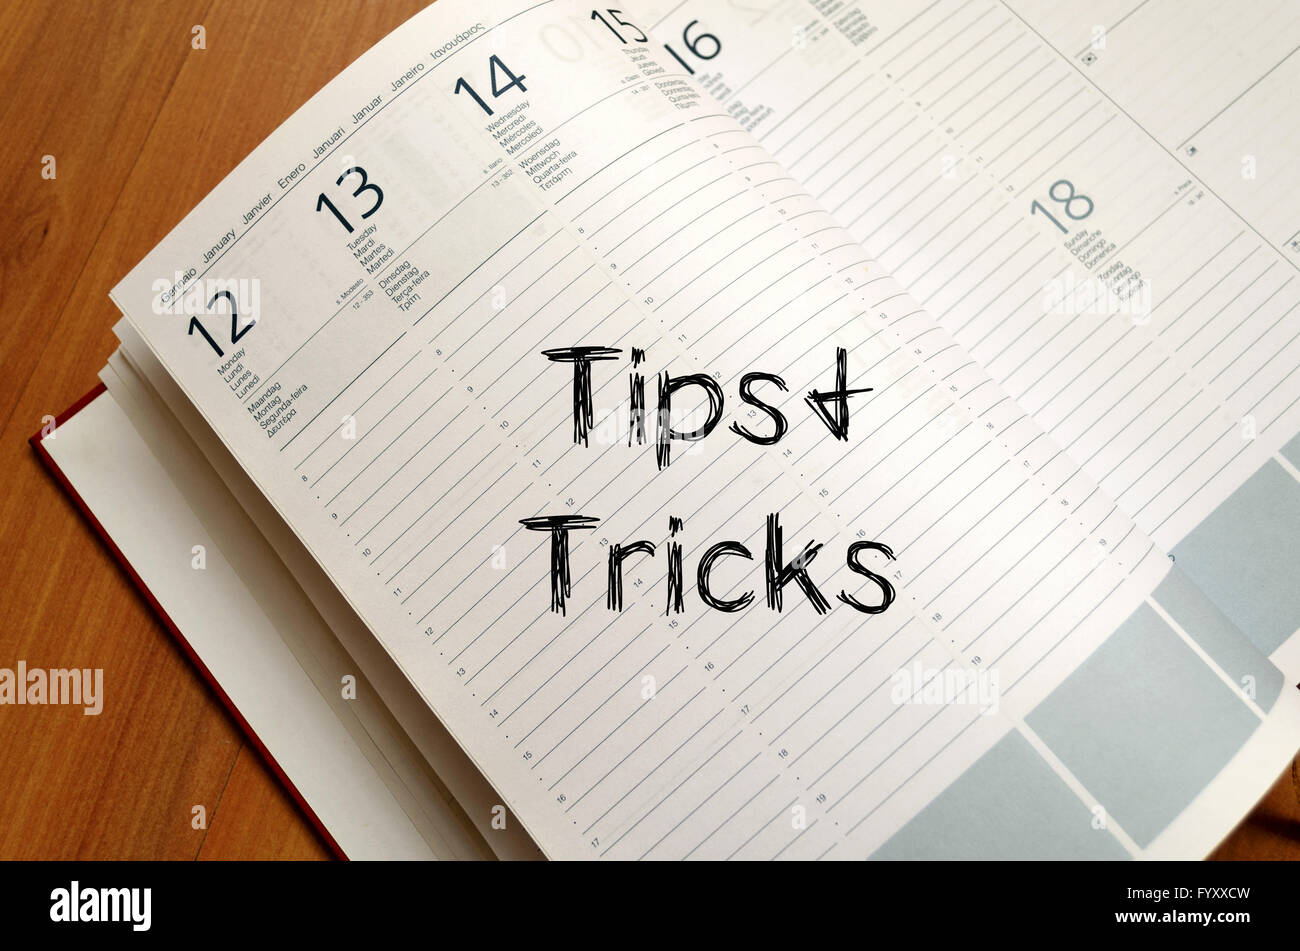 Tips and tricks write on notebook - Stock Image